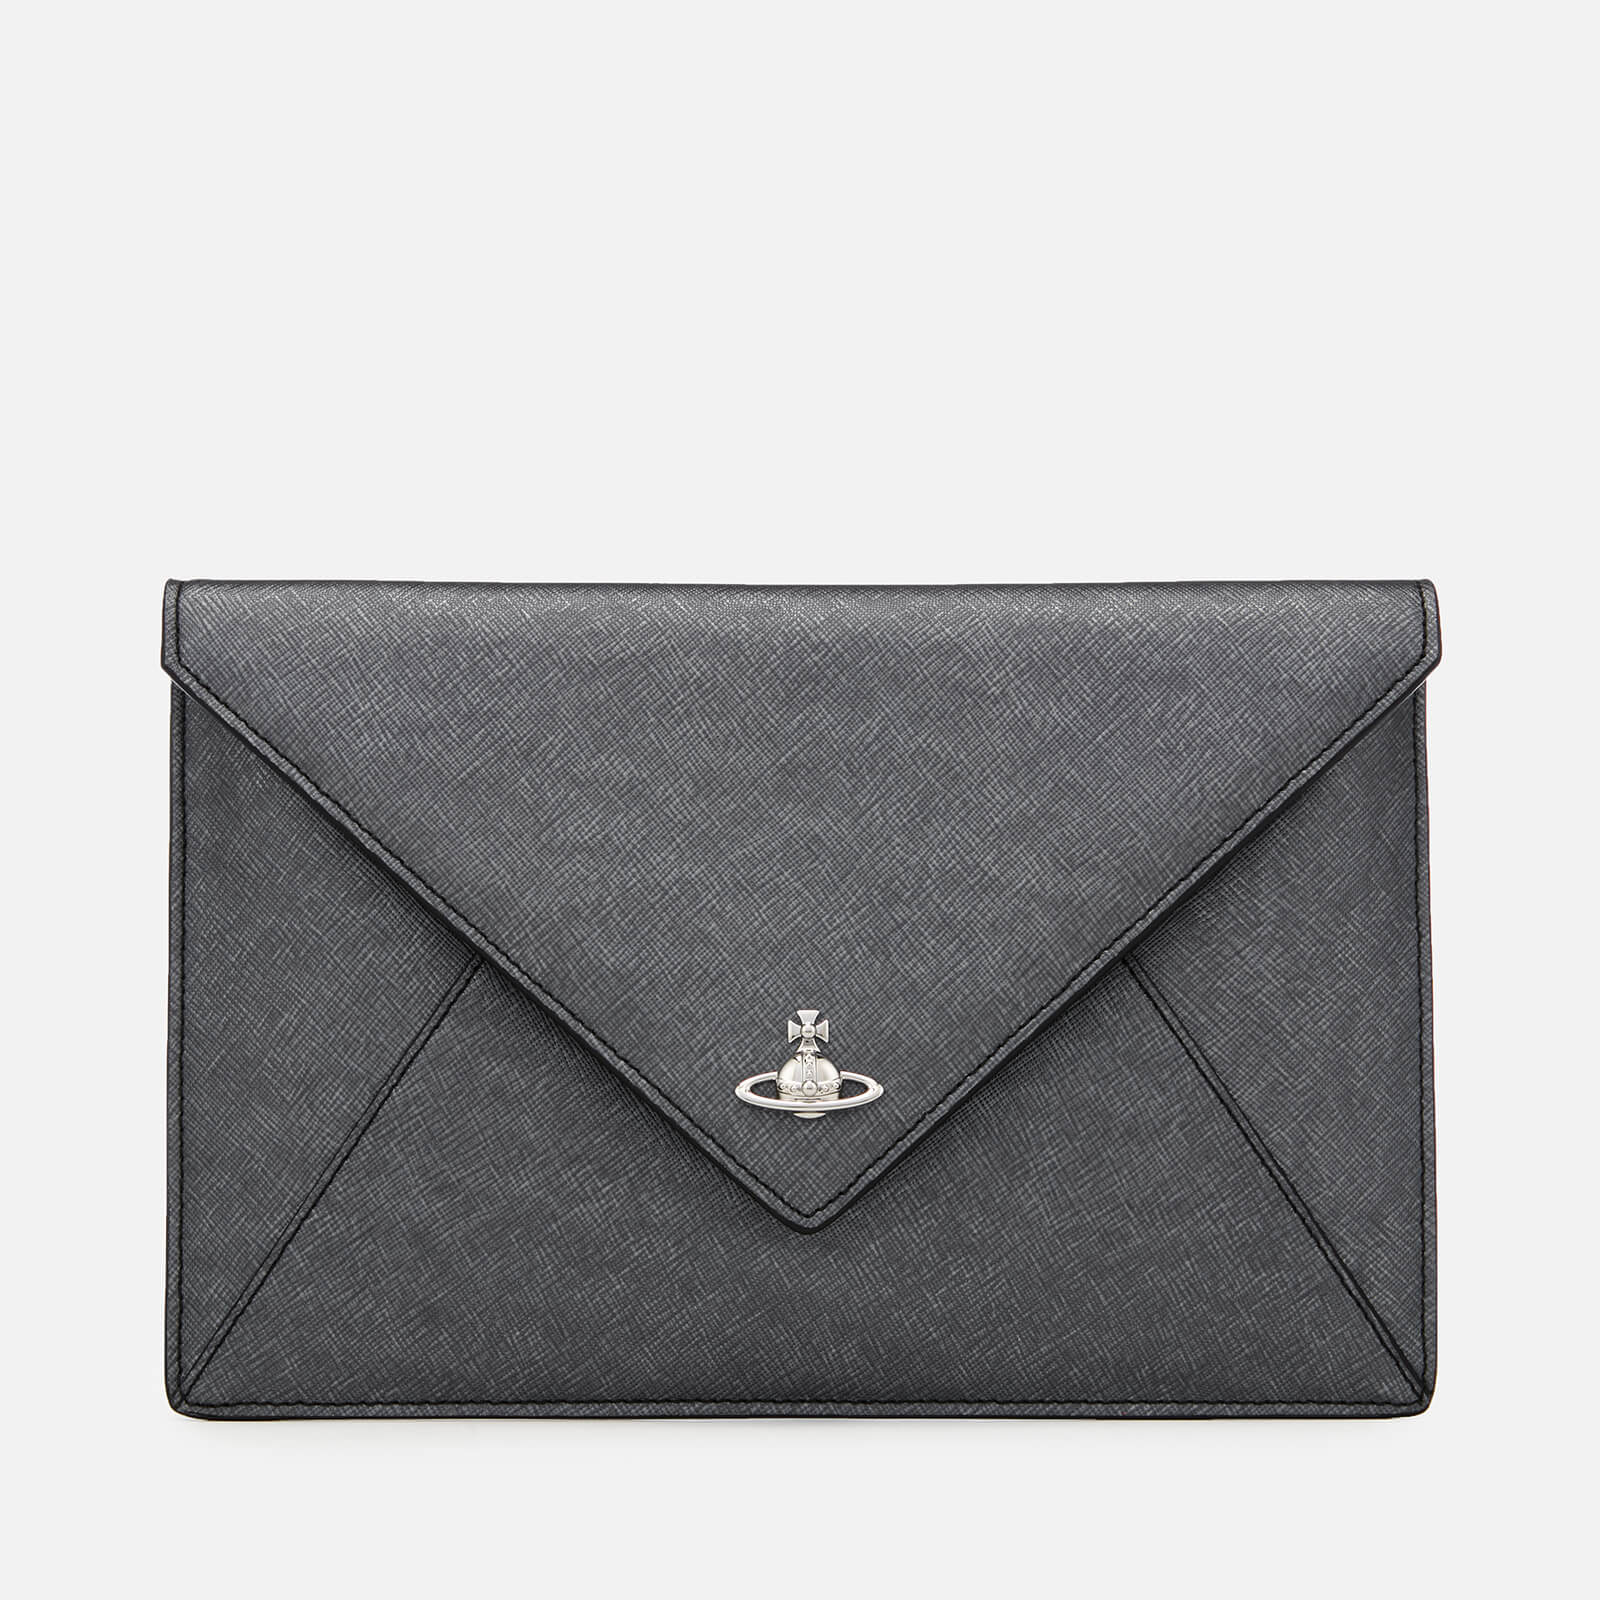 393e76e816d Vivienne Westwood Women's Victoria Envelope Clutch Bag - Anthracite - Free  UK Delivery over £50